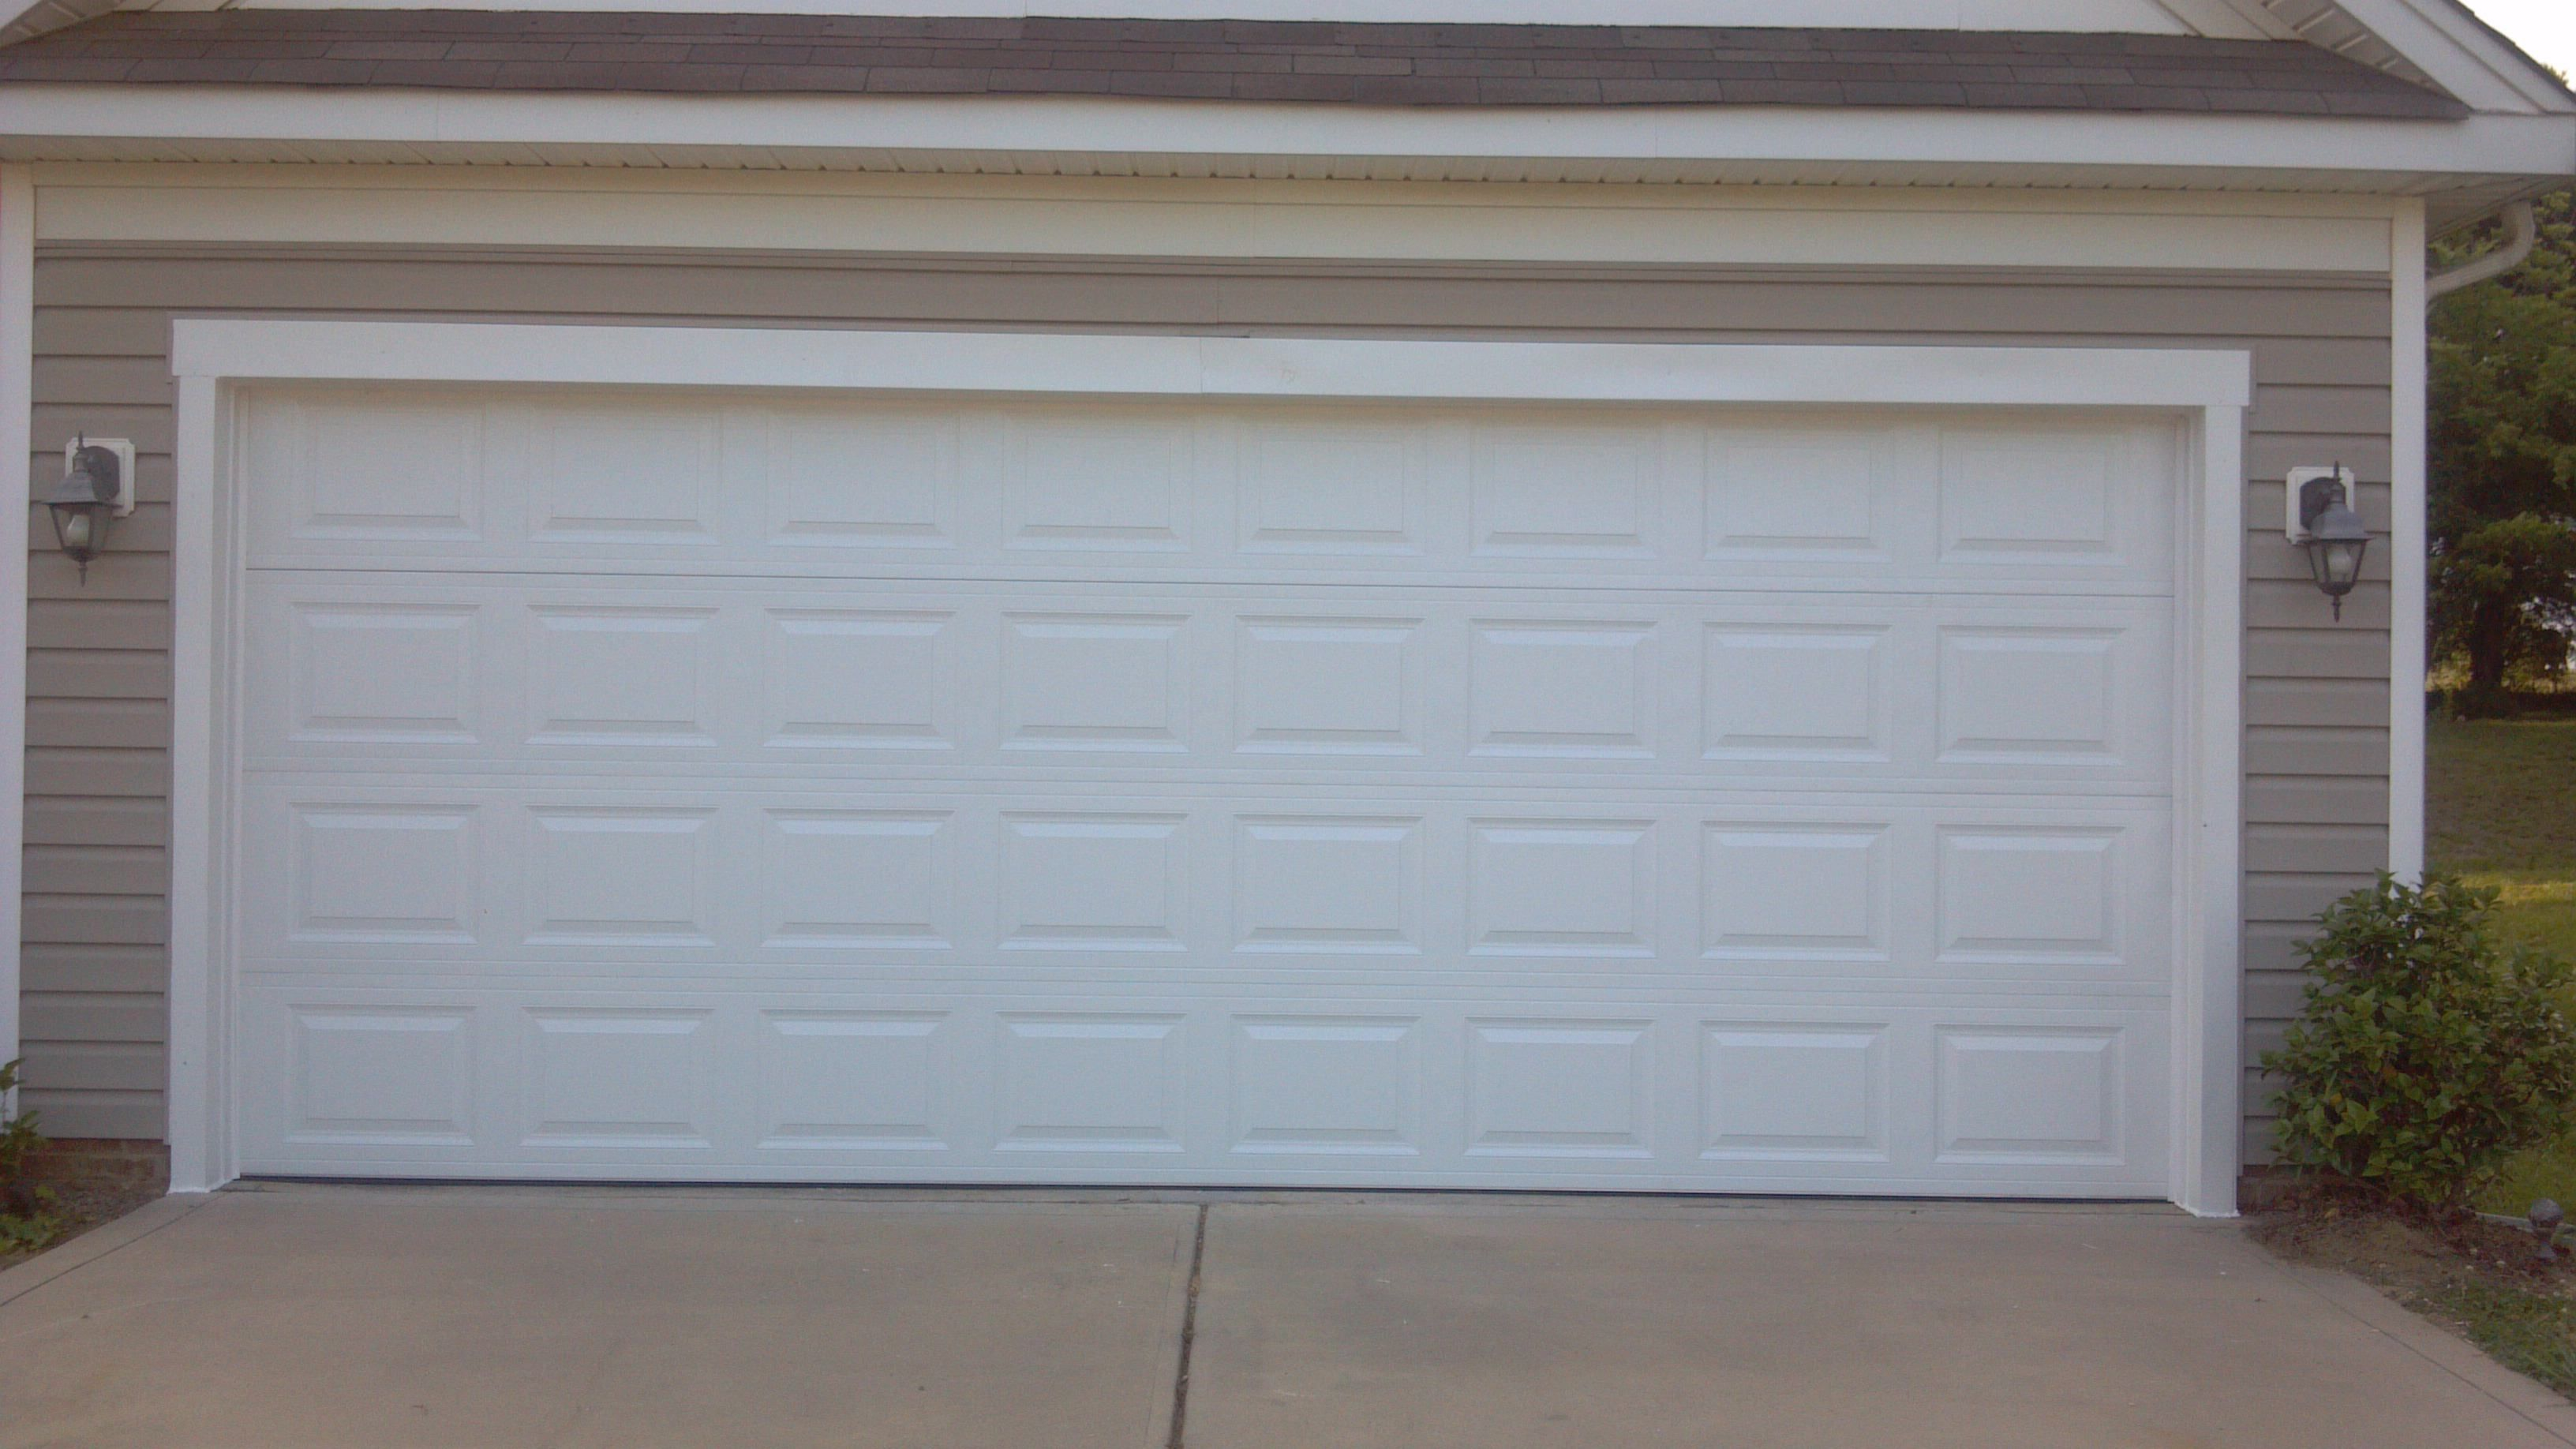 Fascinating Choices Of Standard Garage Door Sizes Made Of Wood And Aluminum Http Www Wallsies Com Fascinating Choices Of Standard Garage Door Sizes Made Of